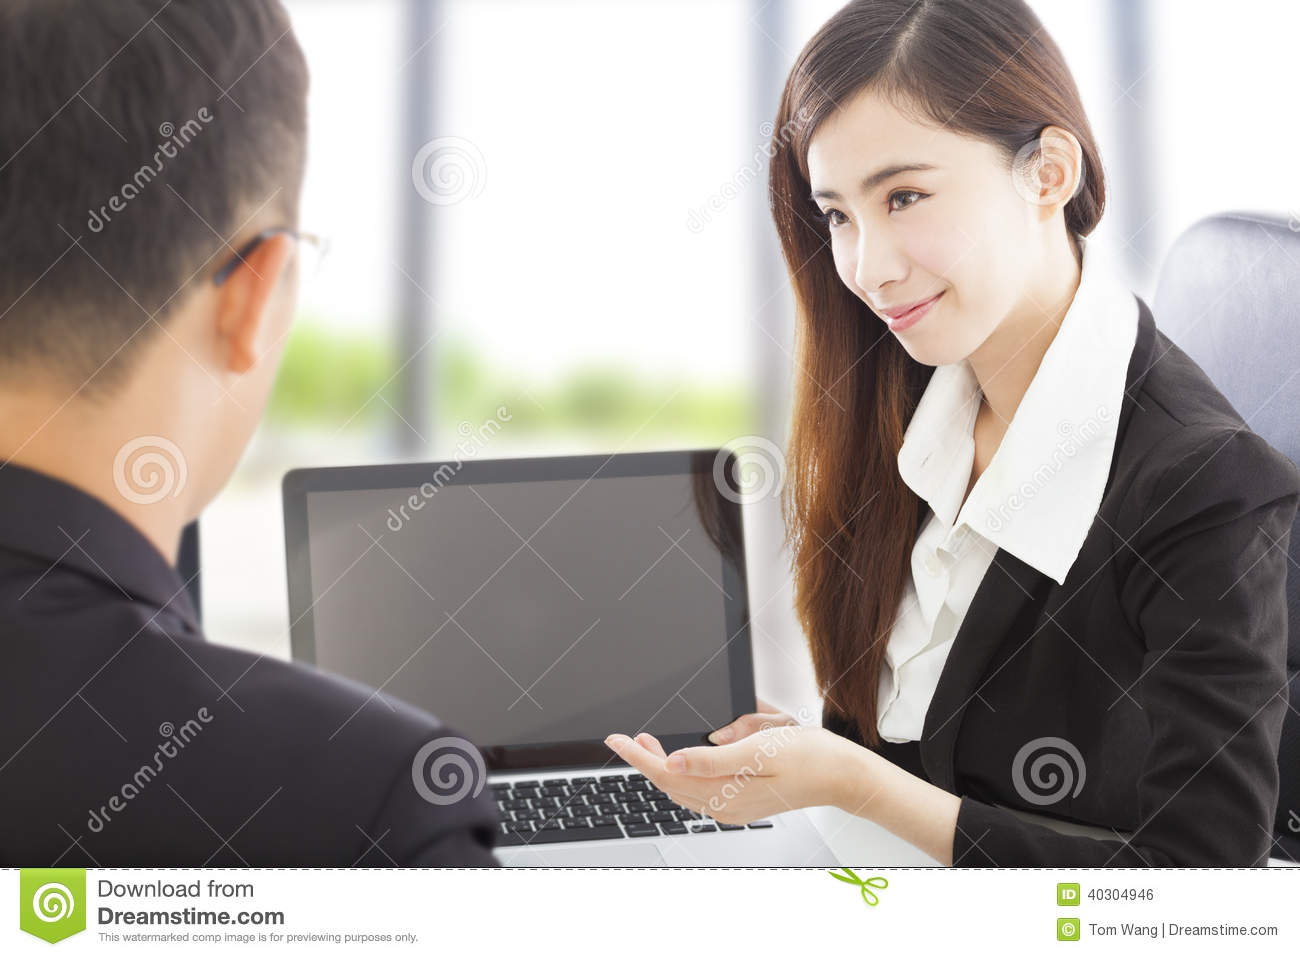 Smiling Business woman presenting and explaining a project